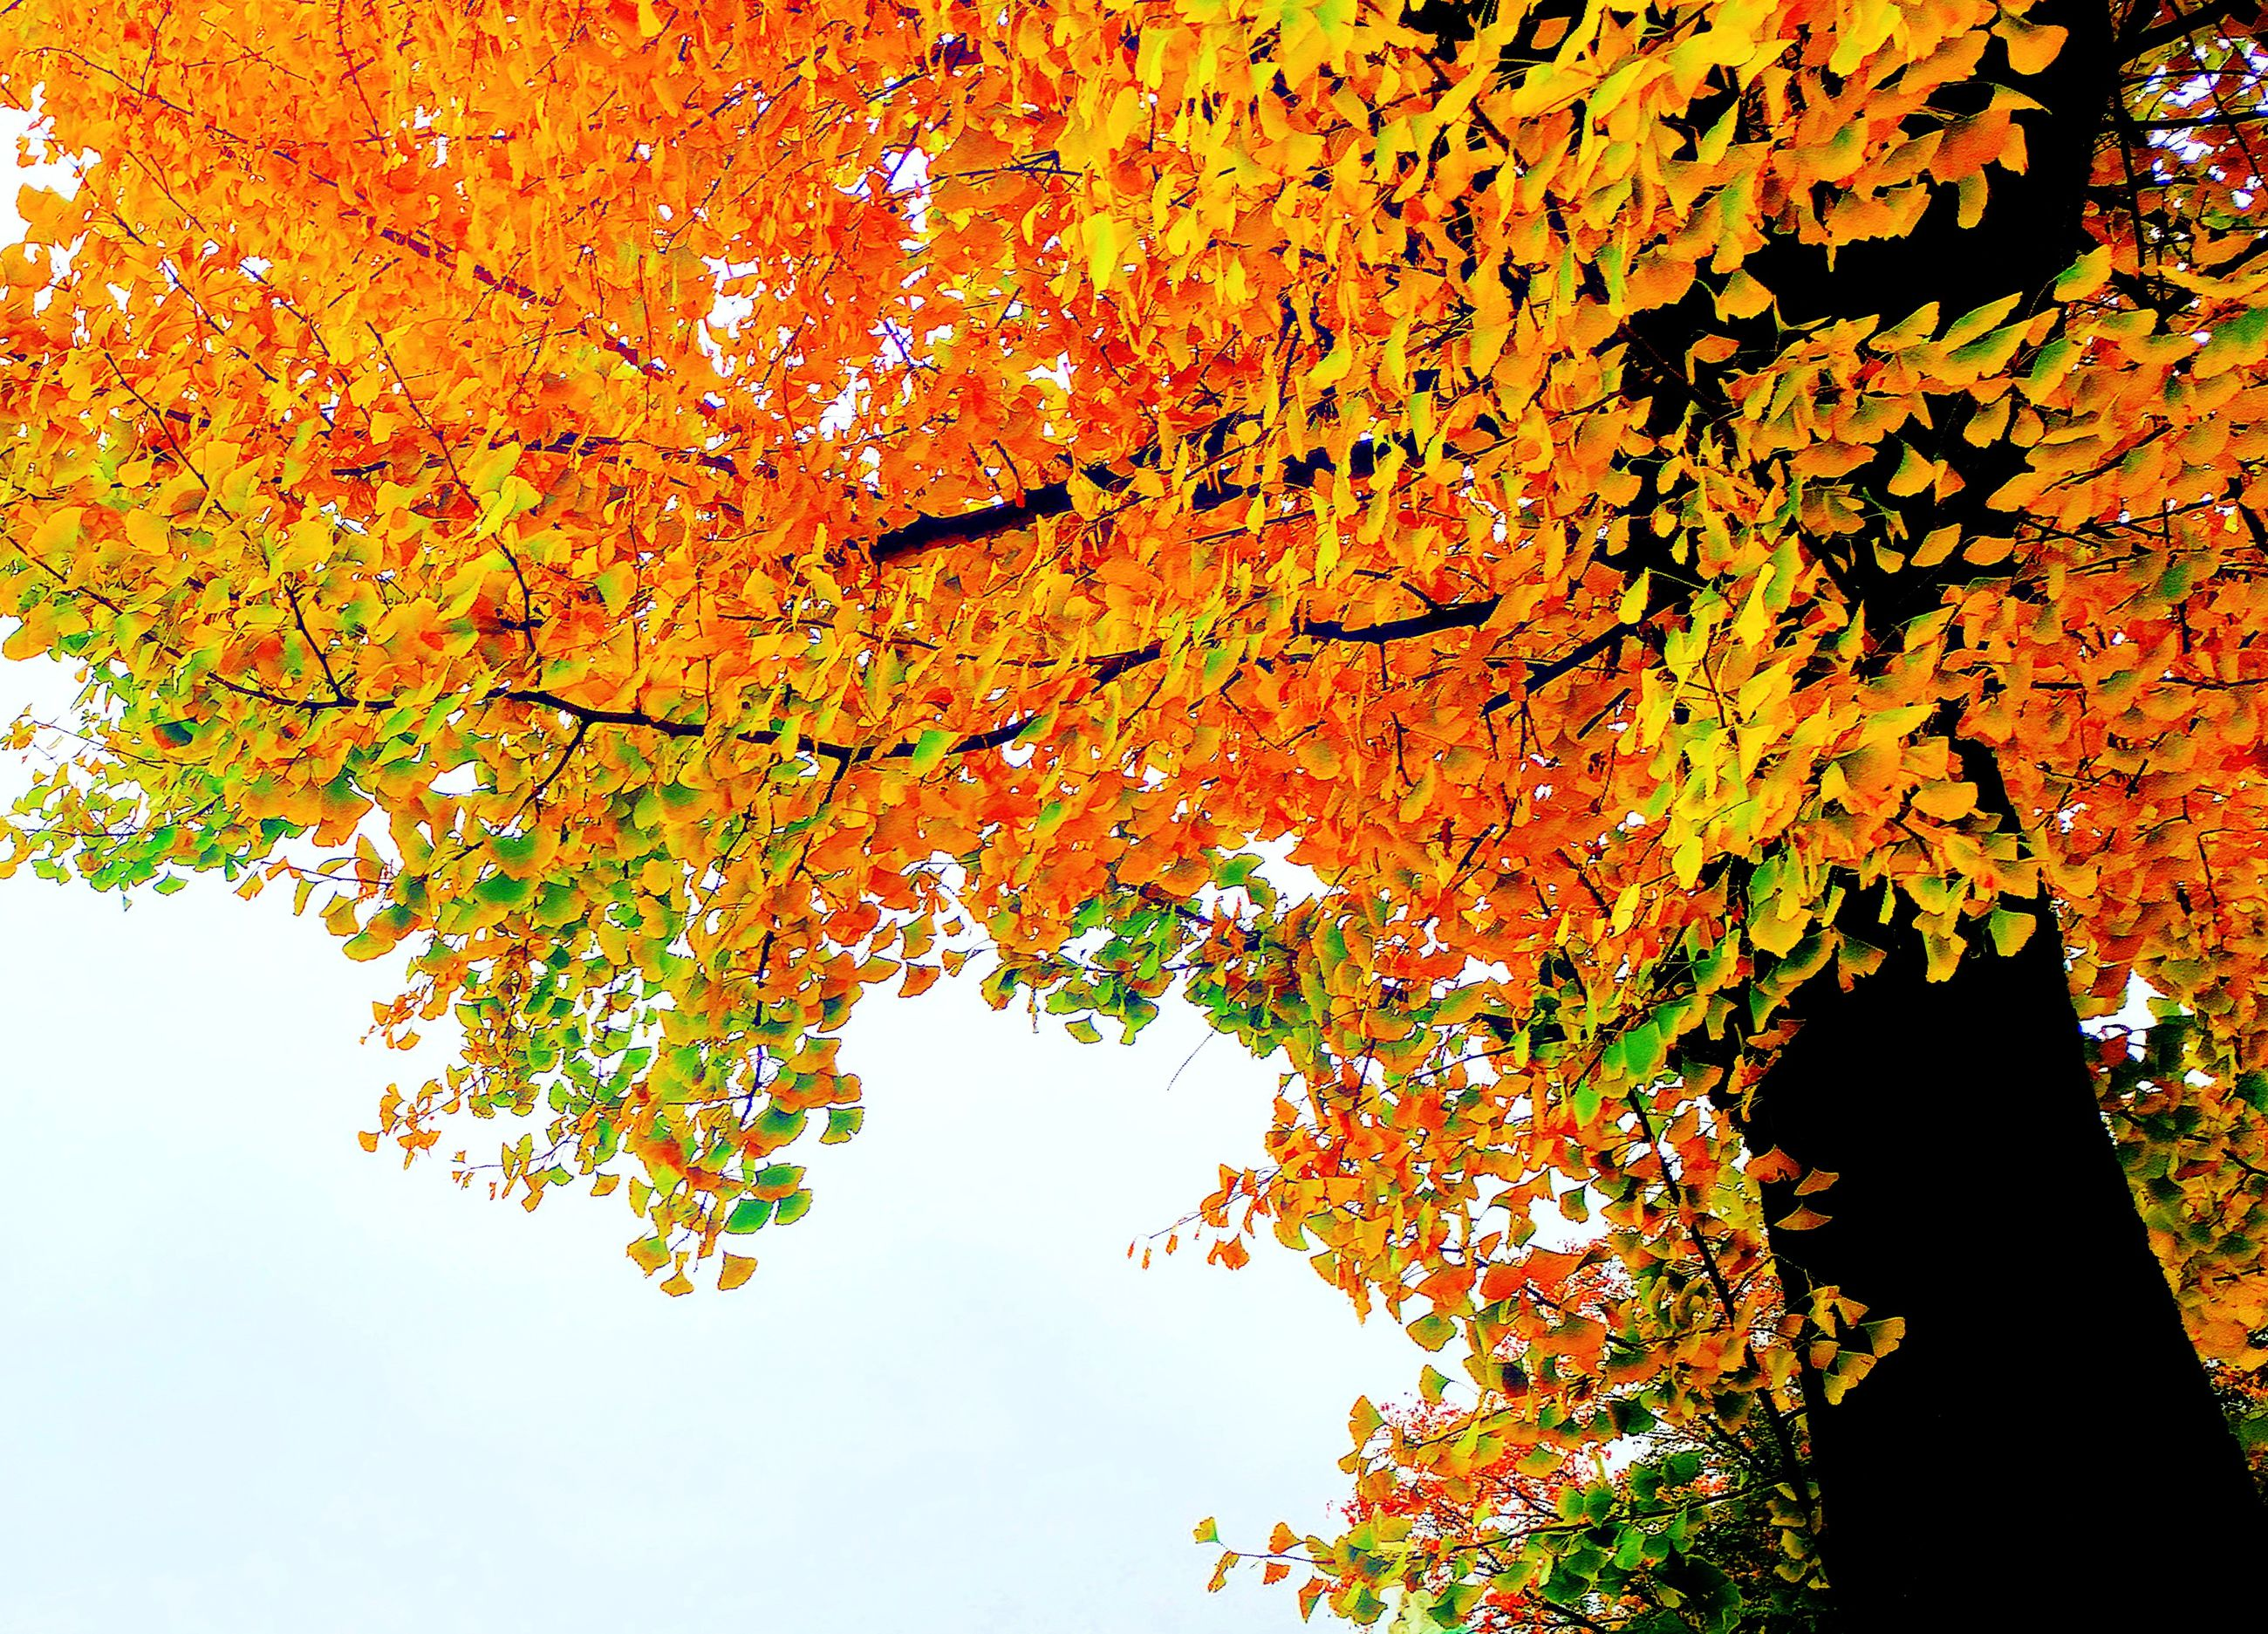 orange color, tree, change, autumn, nature, growth, leaf, beauty in nature, branch, no people, yellow, multi colored, day, close-up, sky, fragility, backgrounds, outdoors, maple leaf, maple